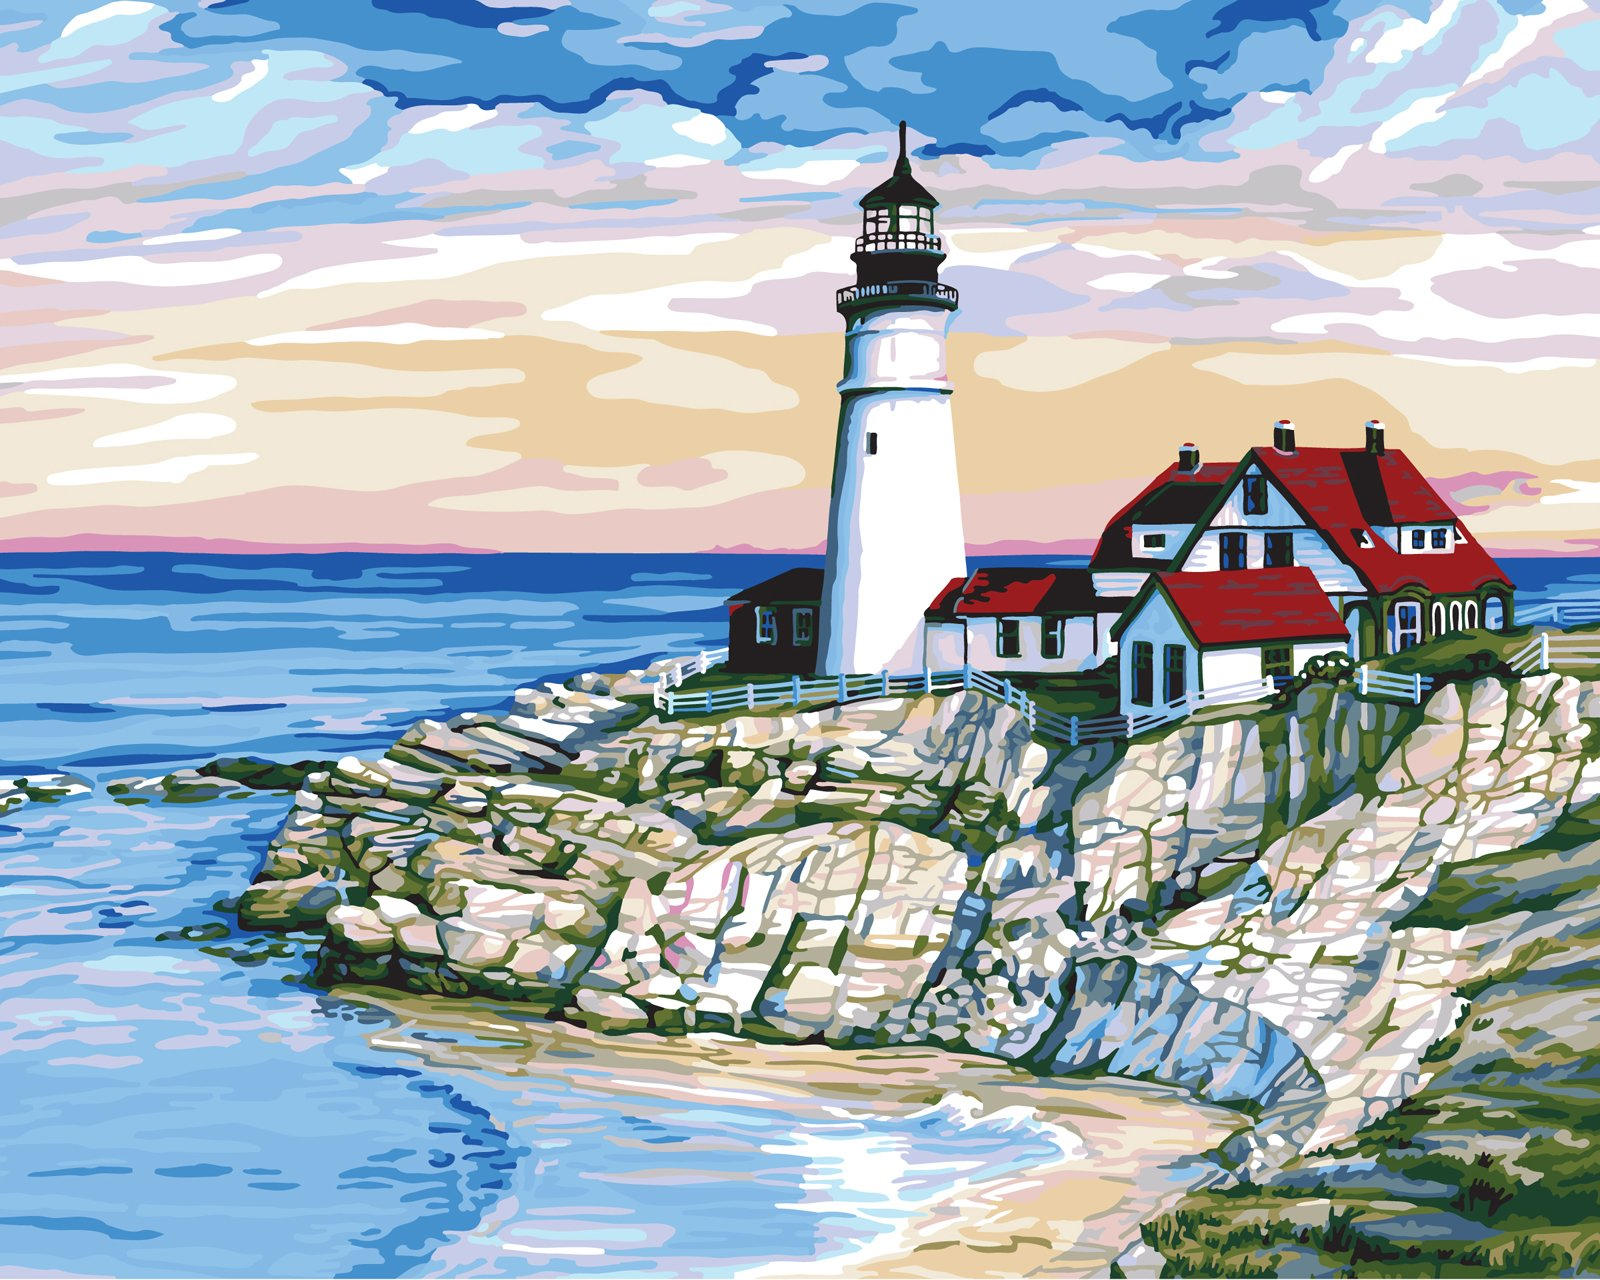 Plaid Creates Paint by Number Kit (16 by 20-Inch), 21721 Morning at Port